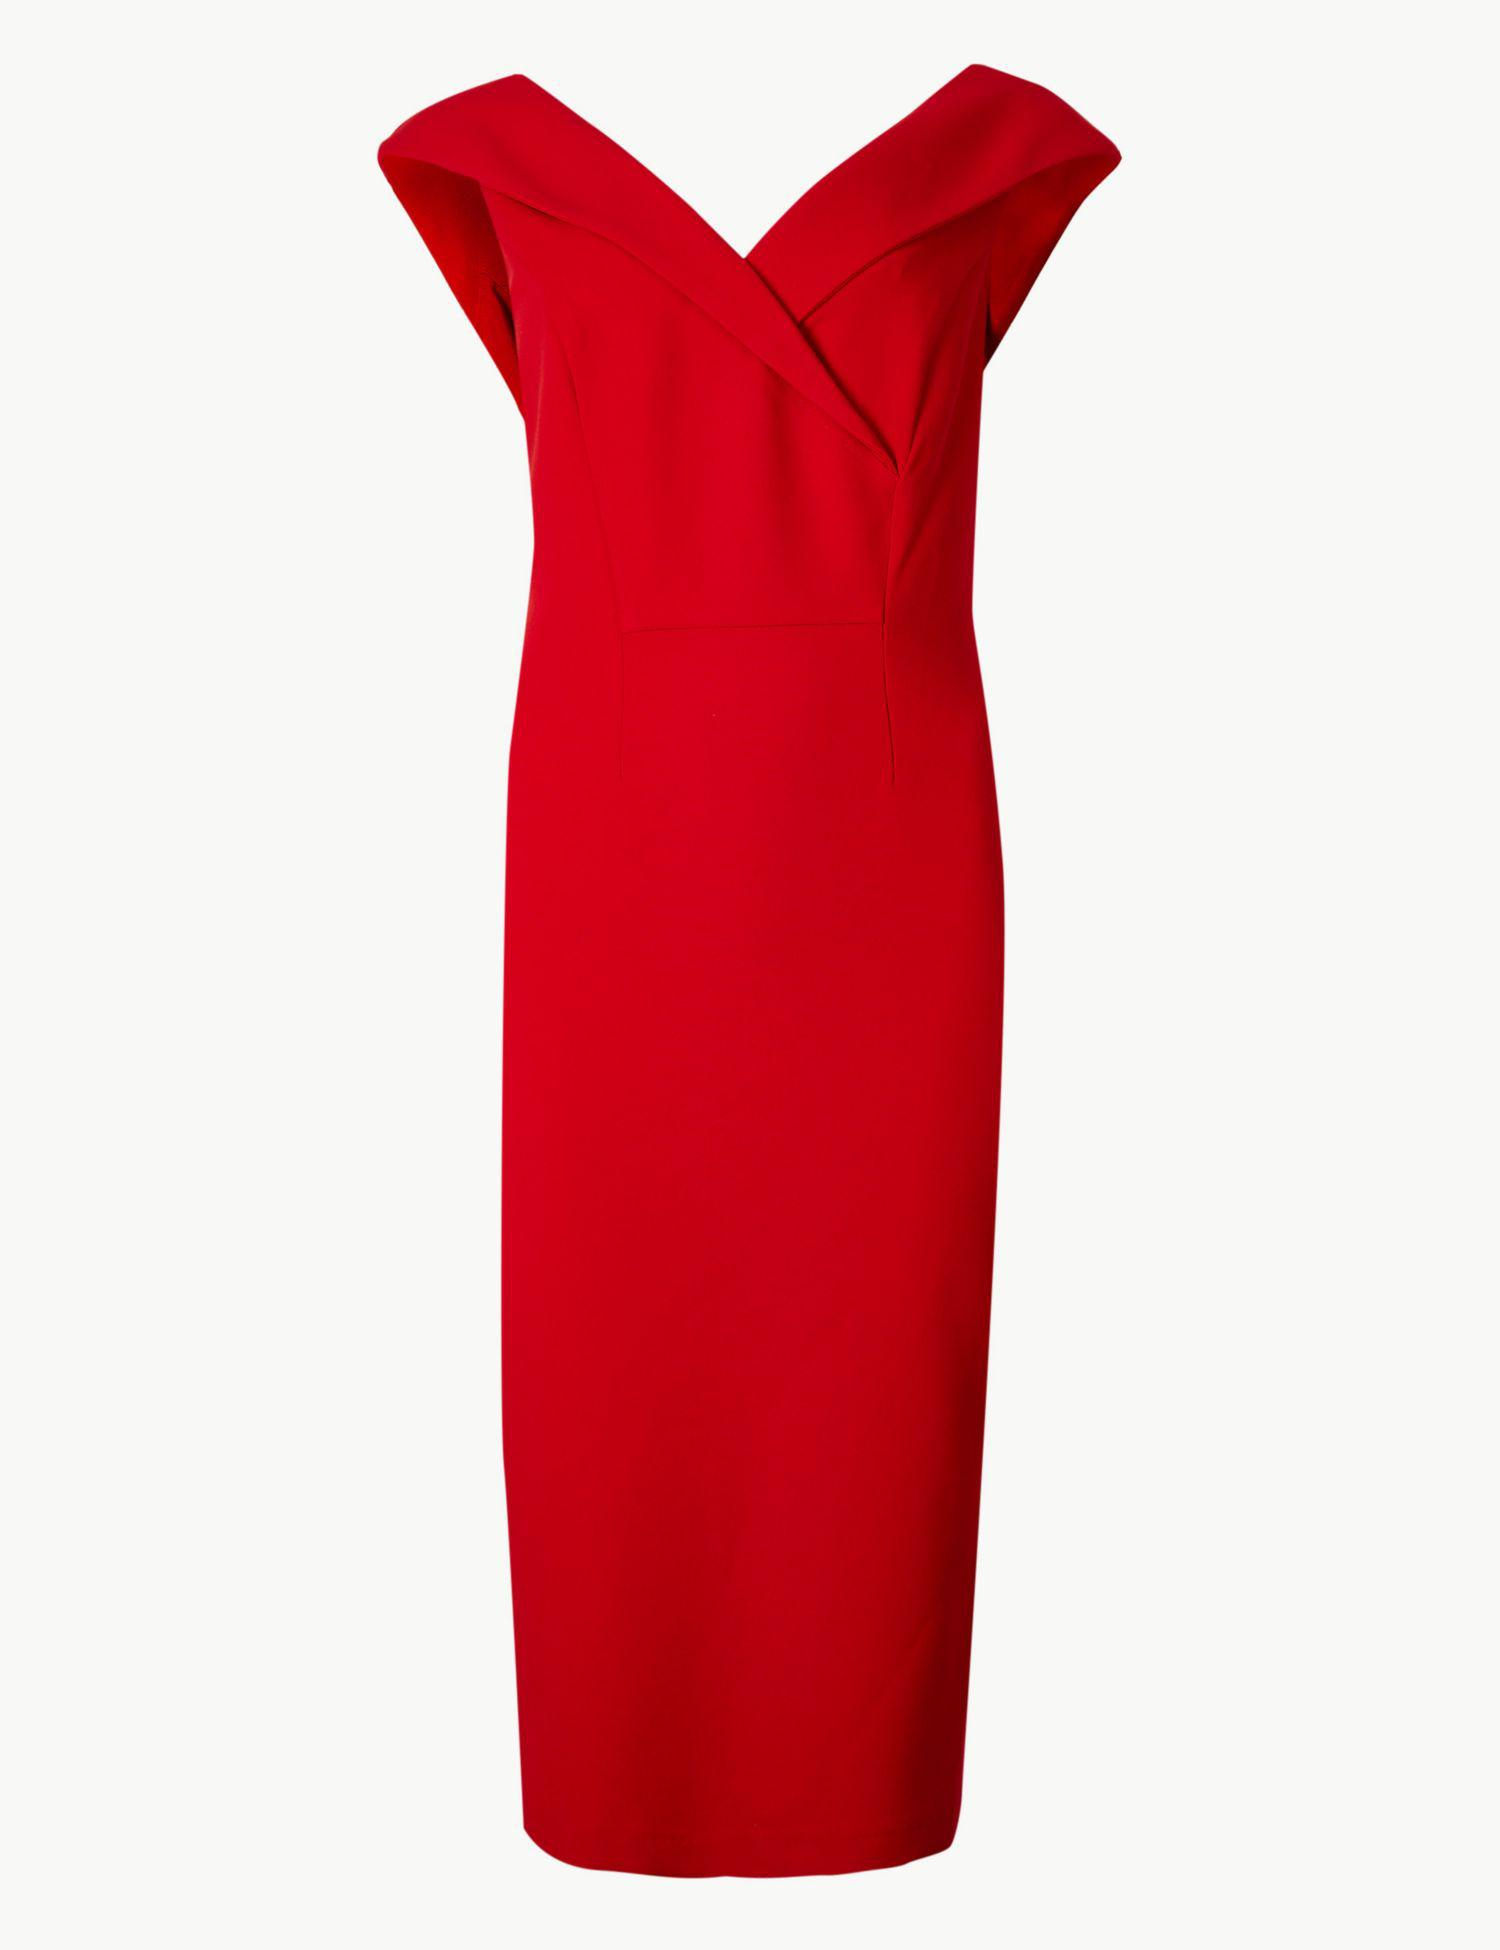 Hill quotes marks and spencer double crepe bodycon dress guide free shipping